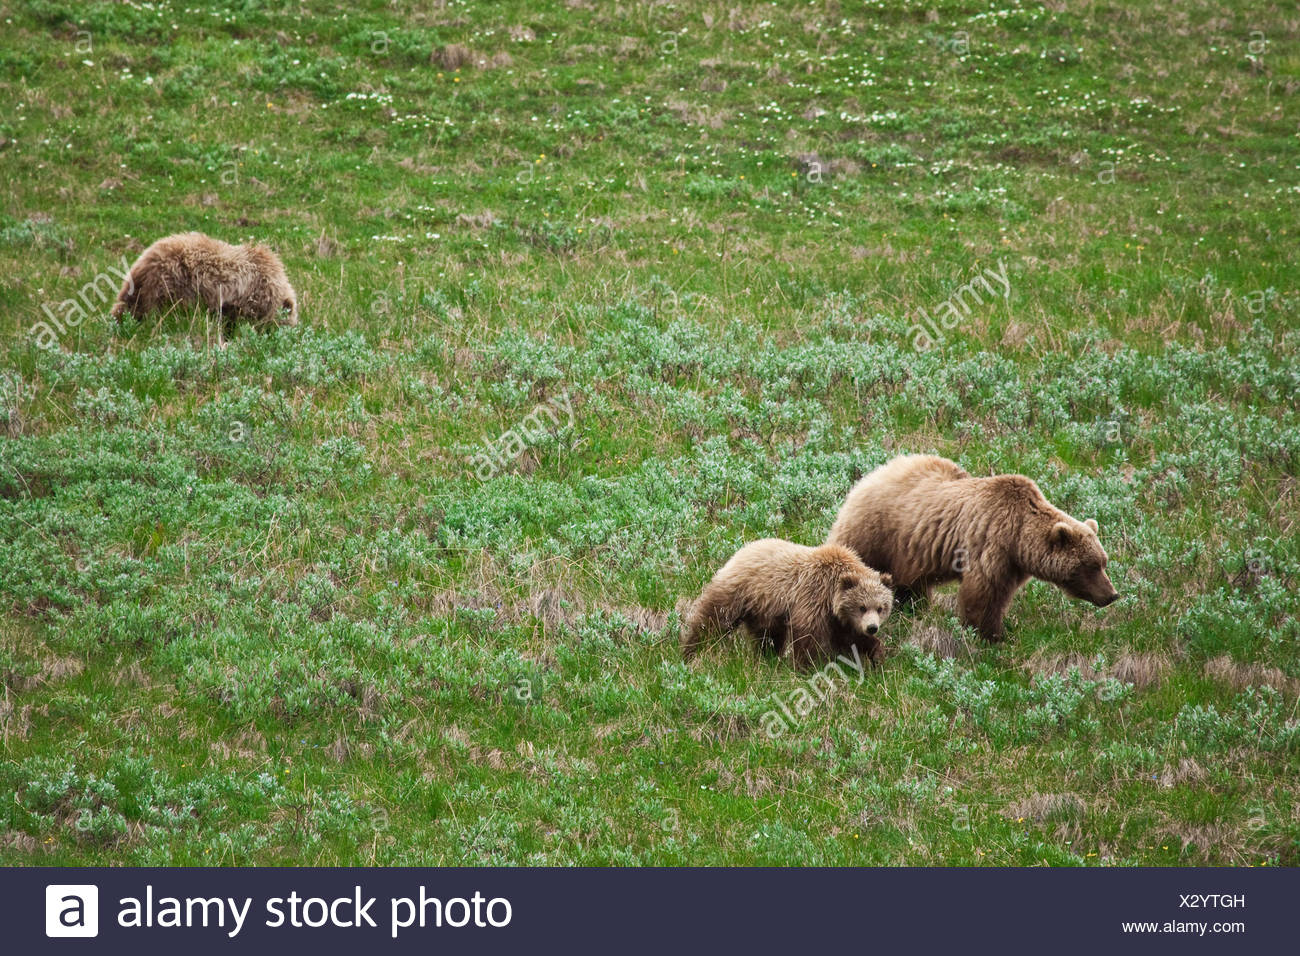 A grizzly sow and two older cubs walk and feed on the tundra in Sable Pass, Denali National Park, Alaska - Stock Image